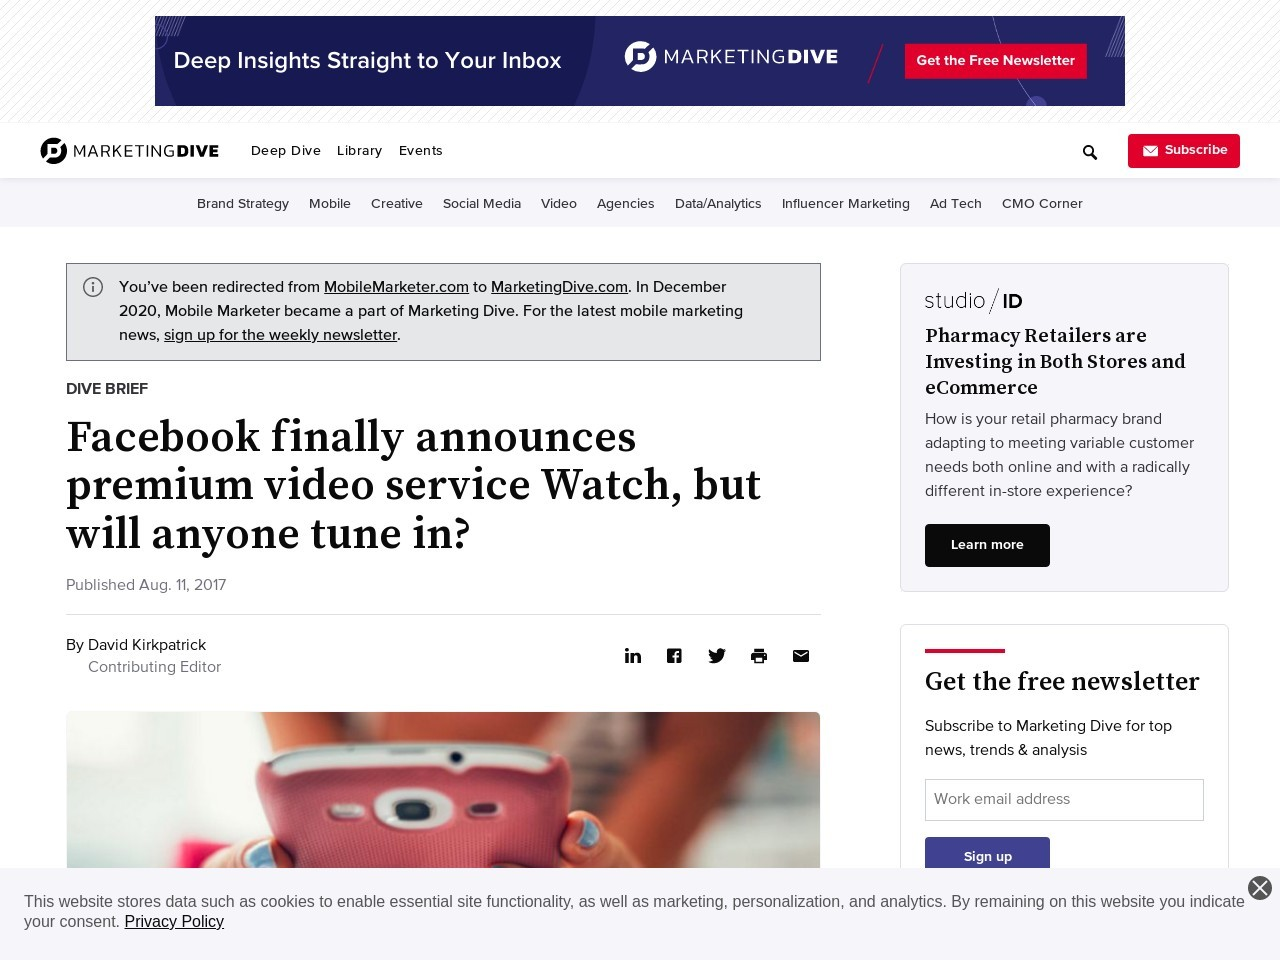 Facebook finally announces premium video service Watch, but will anyone tune in?